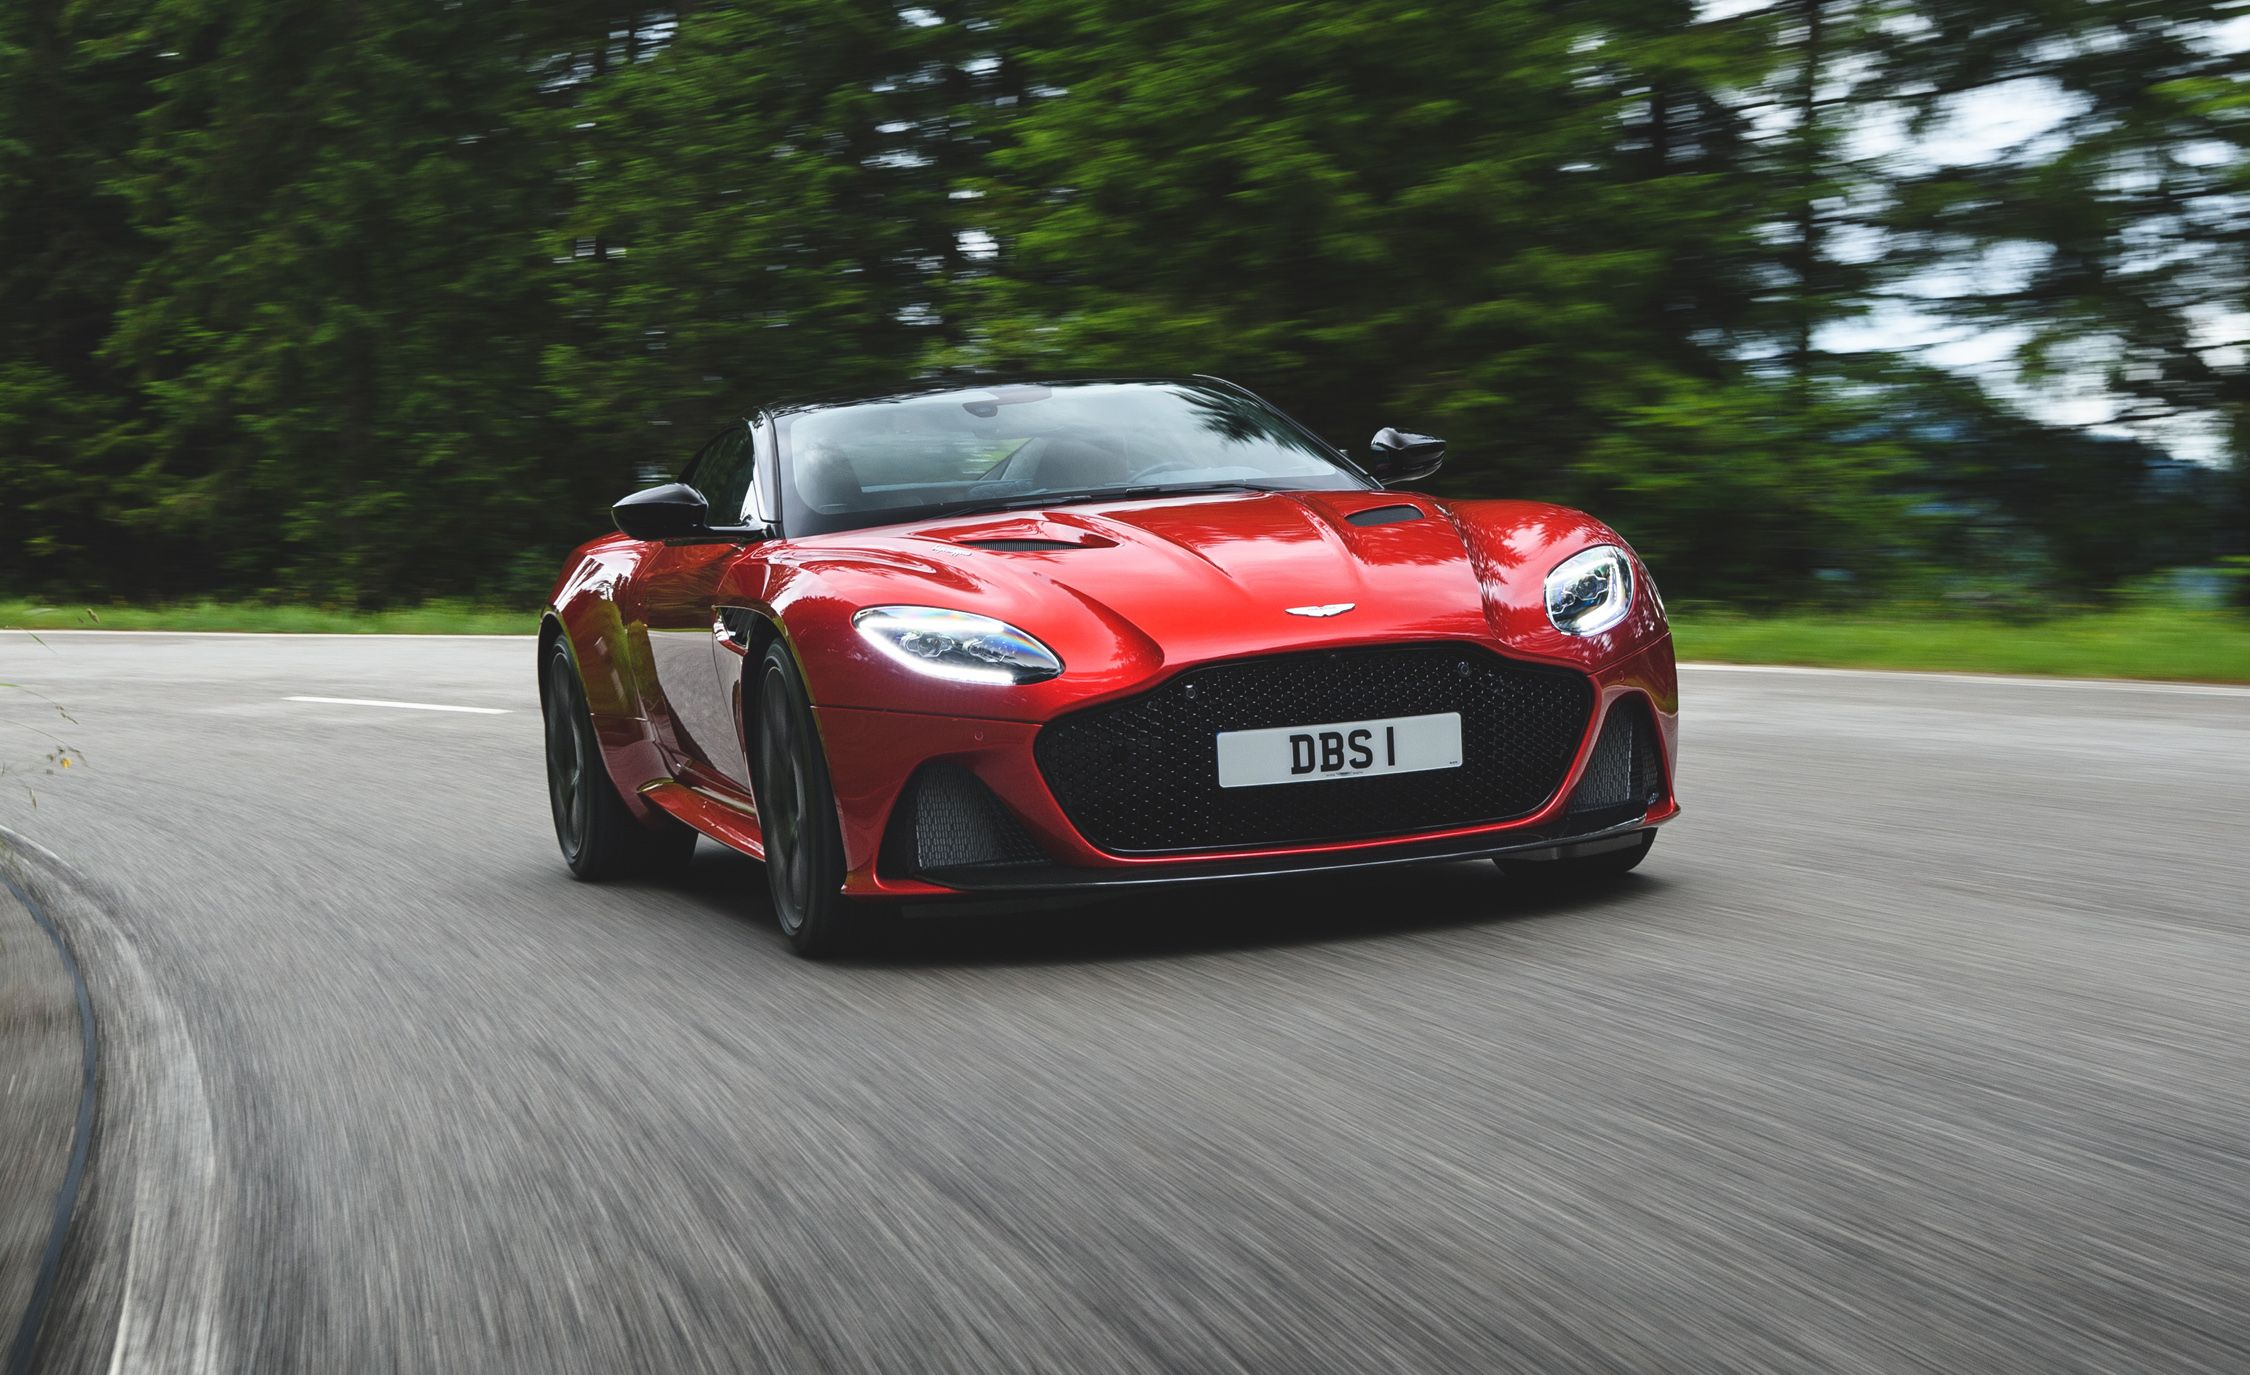 2019 aston martin dbs superleggera it s super all right review rh caranddriver com